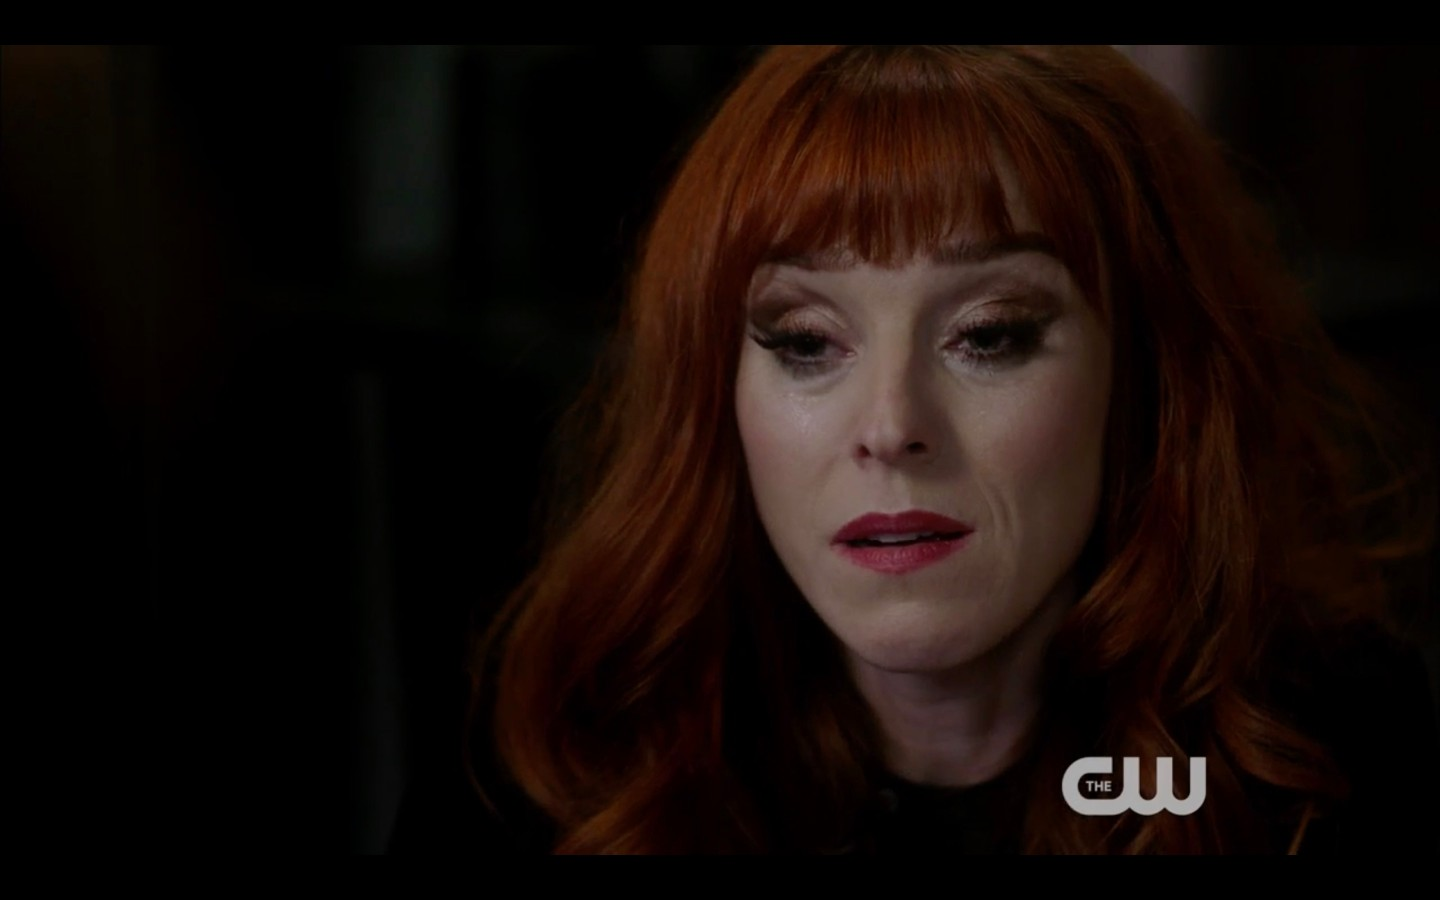 rowena just fought death and lost powerless supernatural